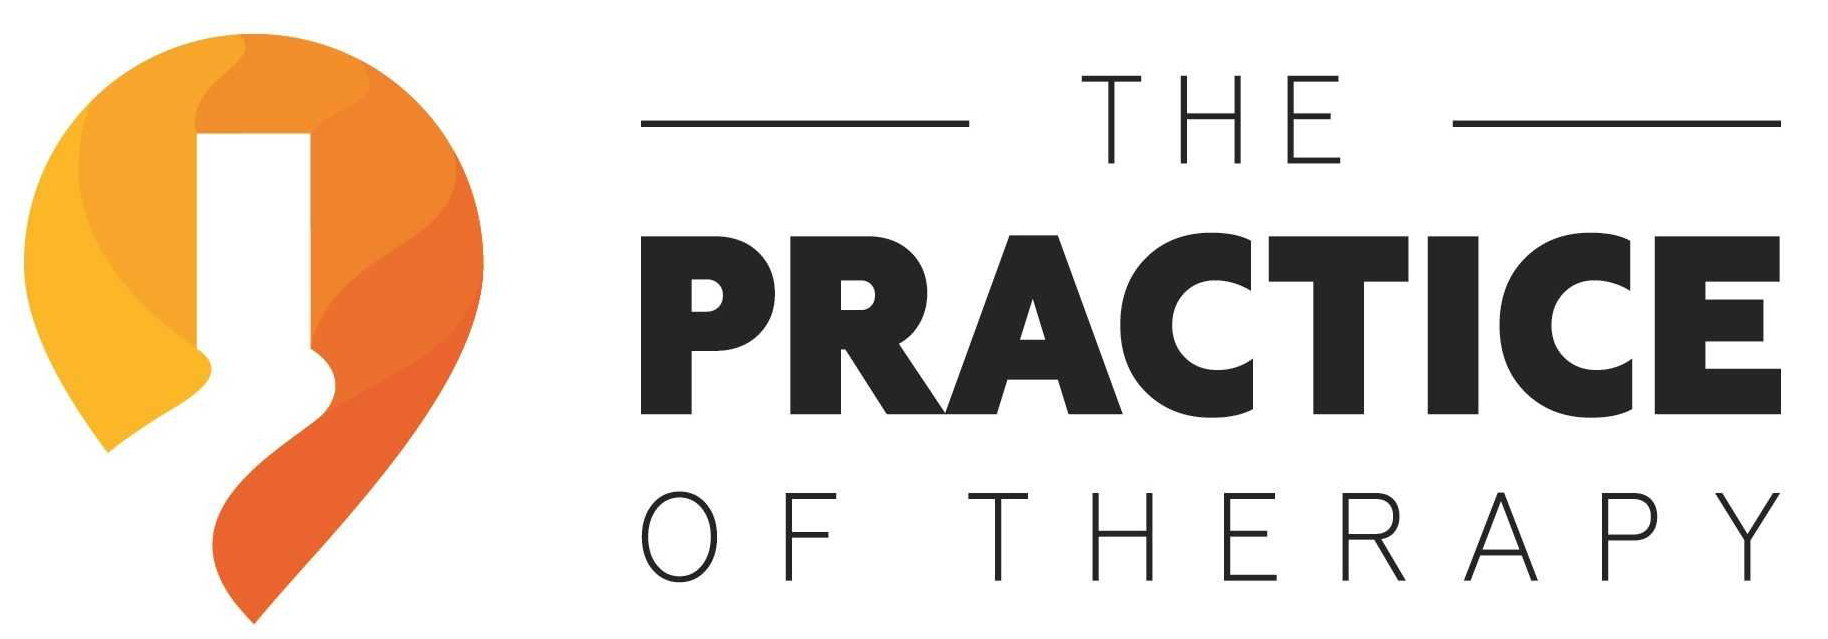 Episode 101: Check out the interview with Gordon Brewer of The Practice of Therapy…learn more about getting PRIMED in YOUR private practice!!   https://practiceoftherapy.com/having-a-primed-private-practice/